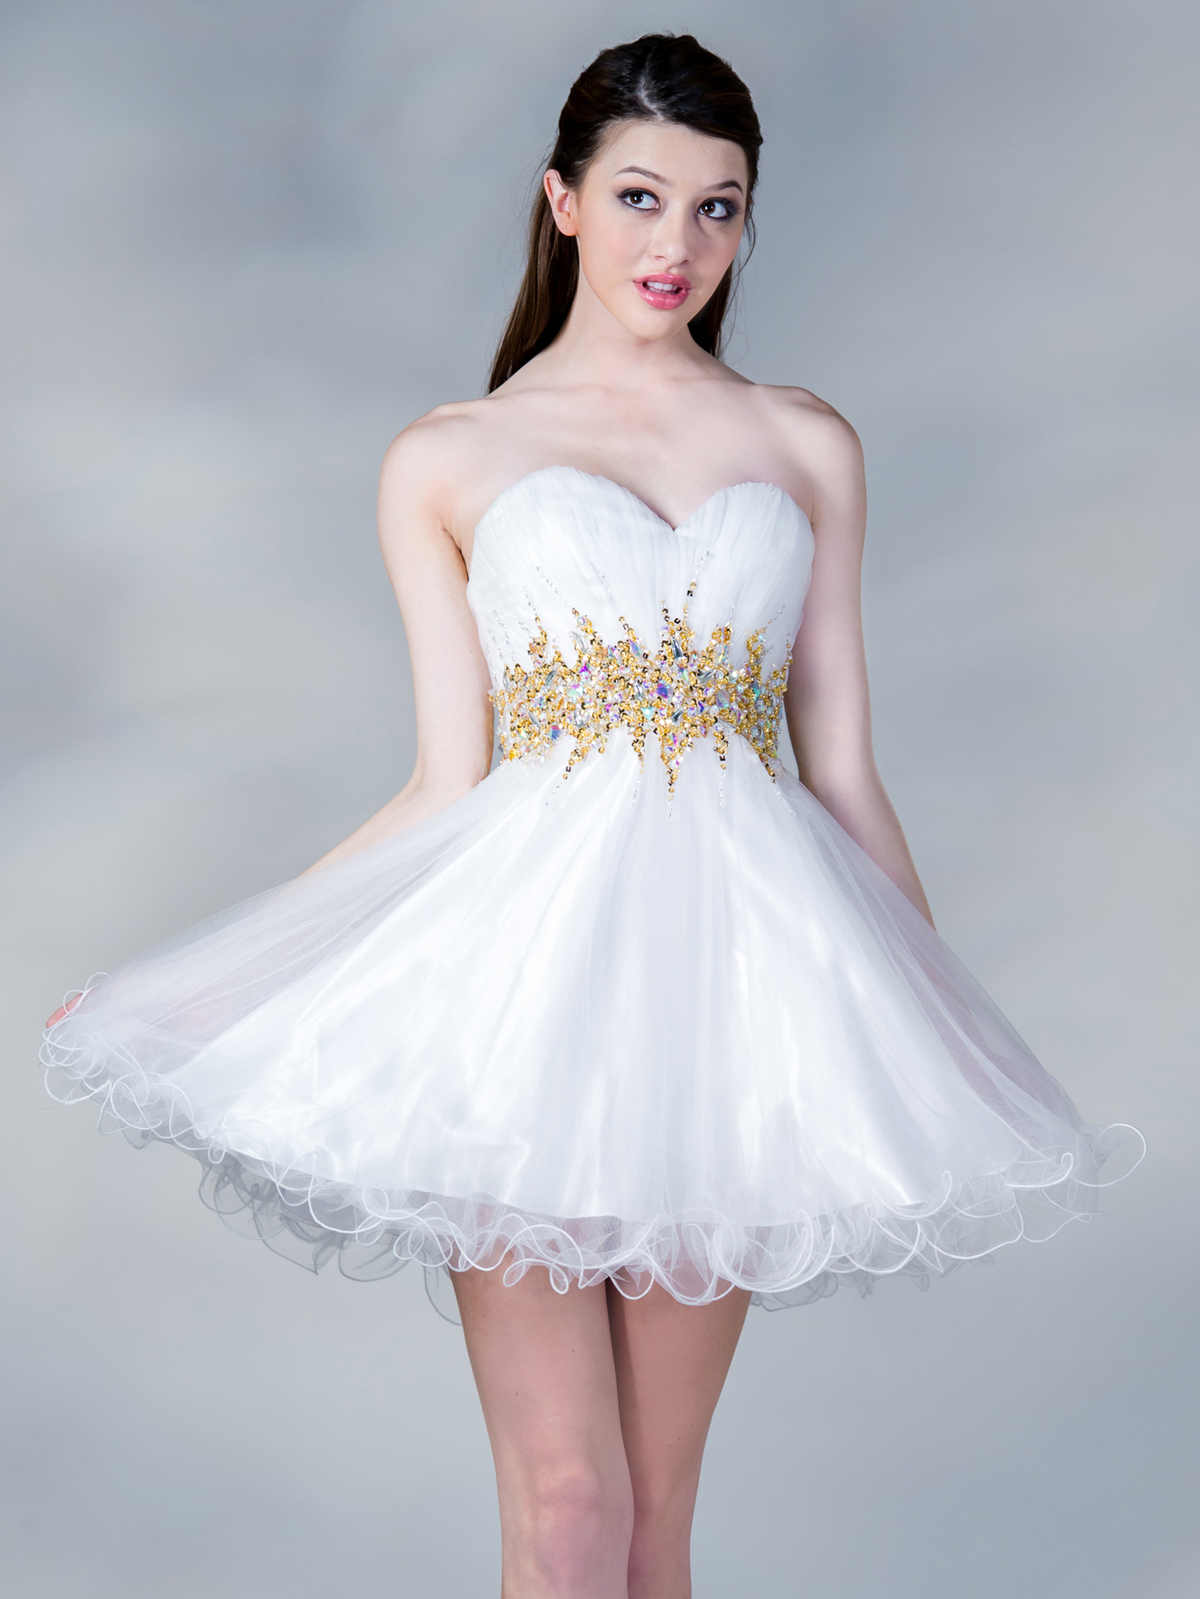 White dress cocktail party -  Jc870 Jeweled Waist Party Dress White Gold Front View Medium